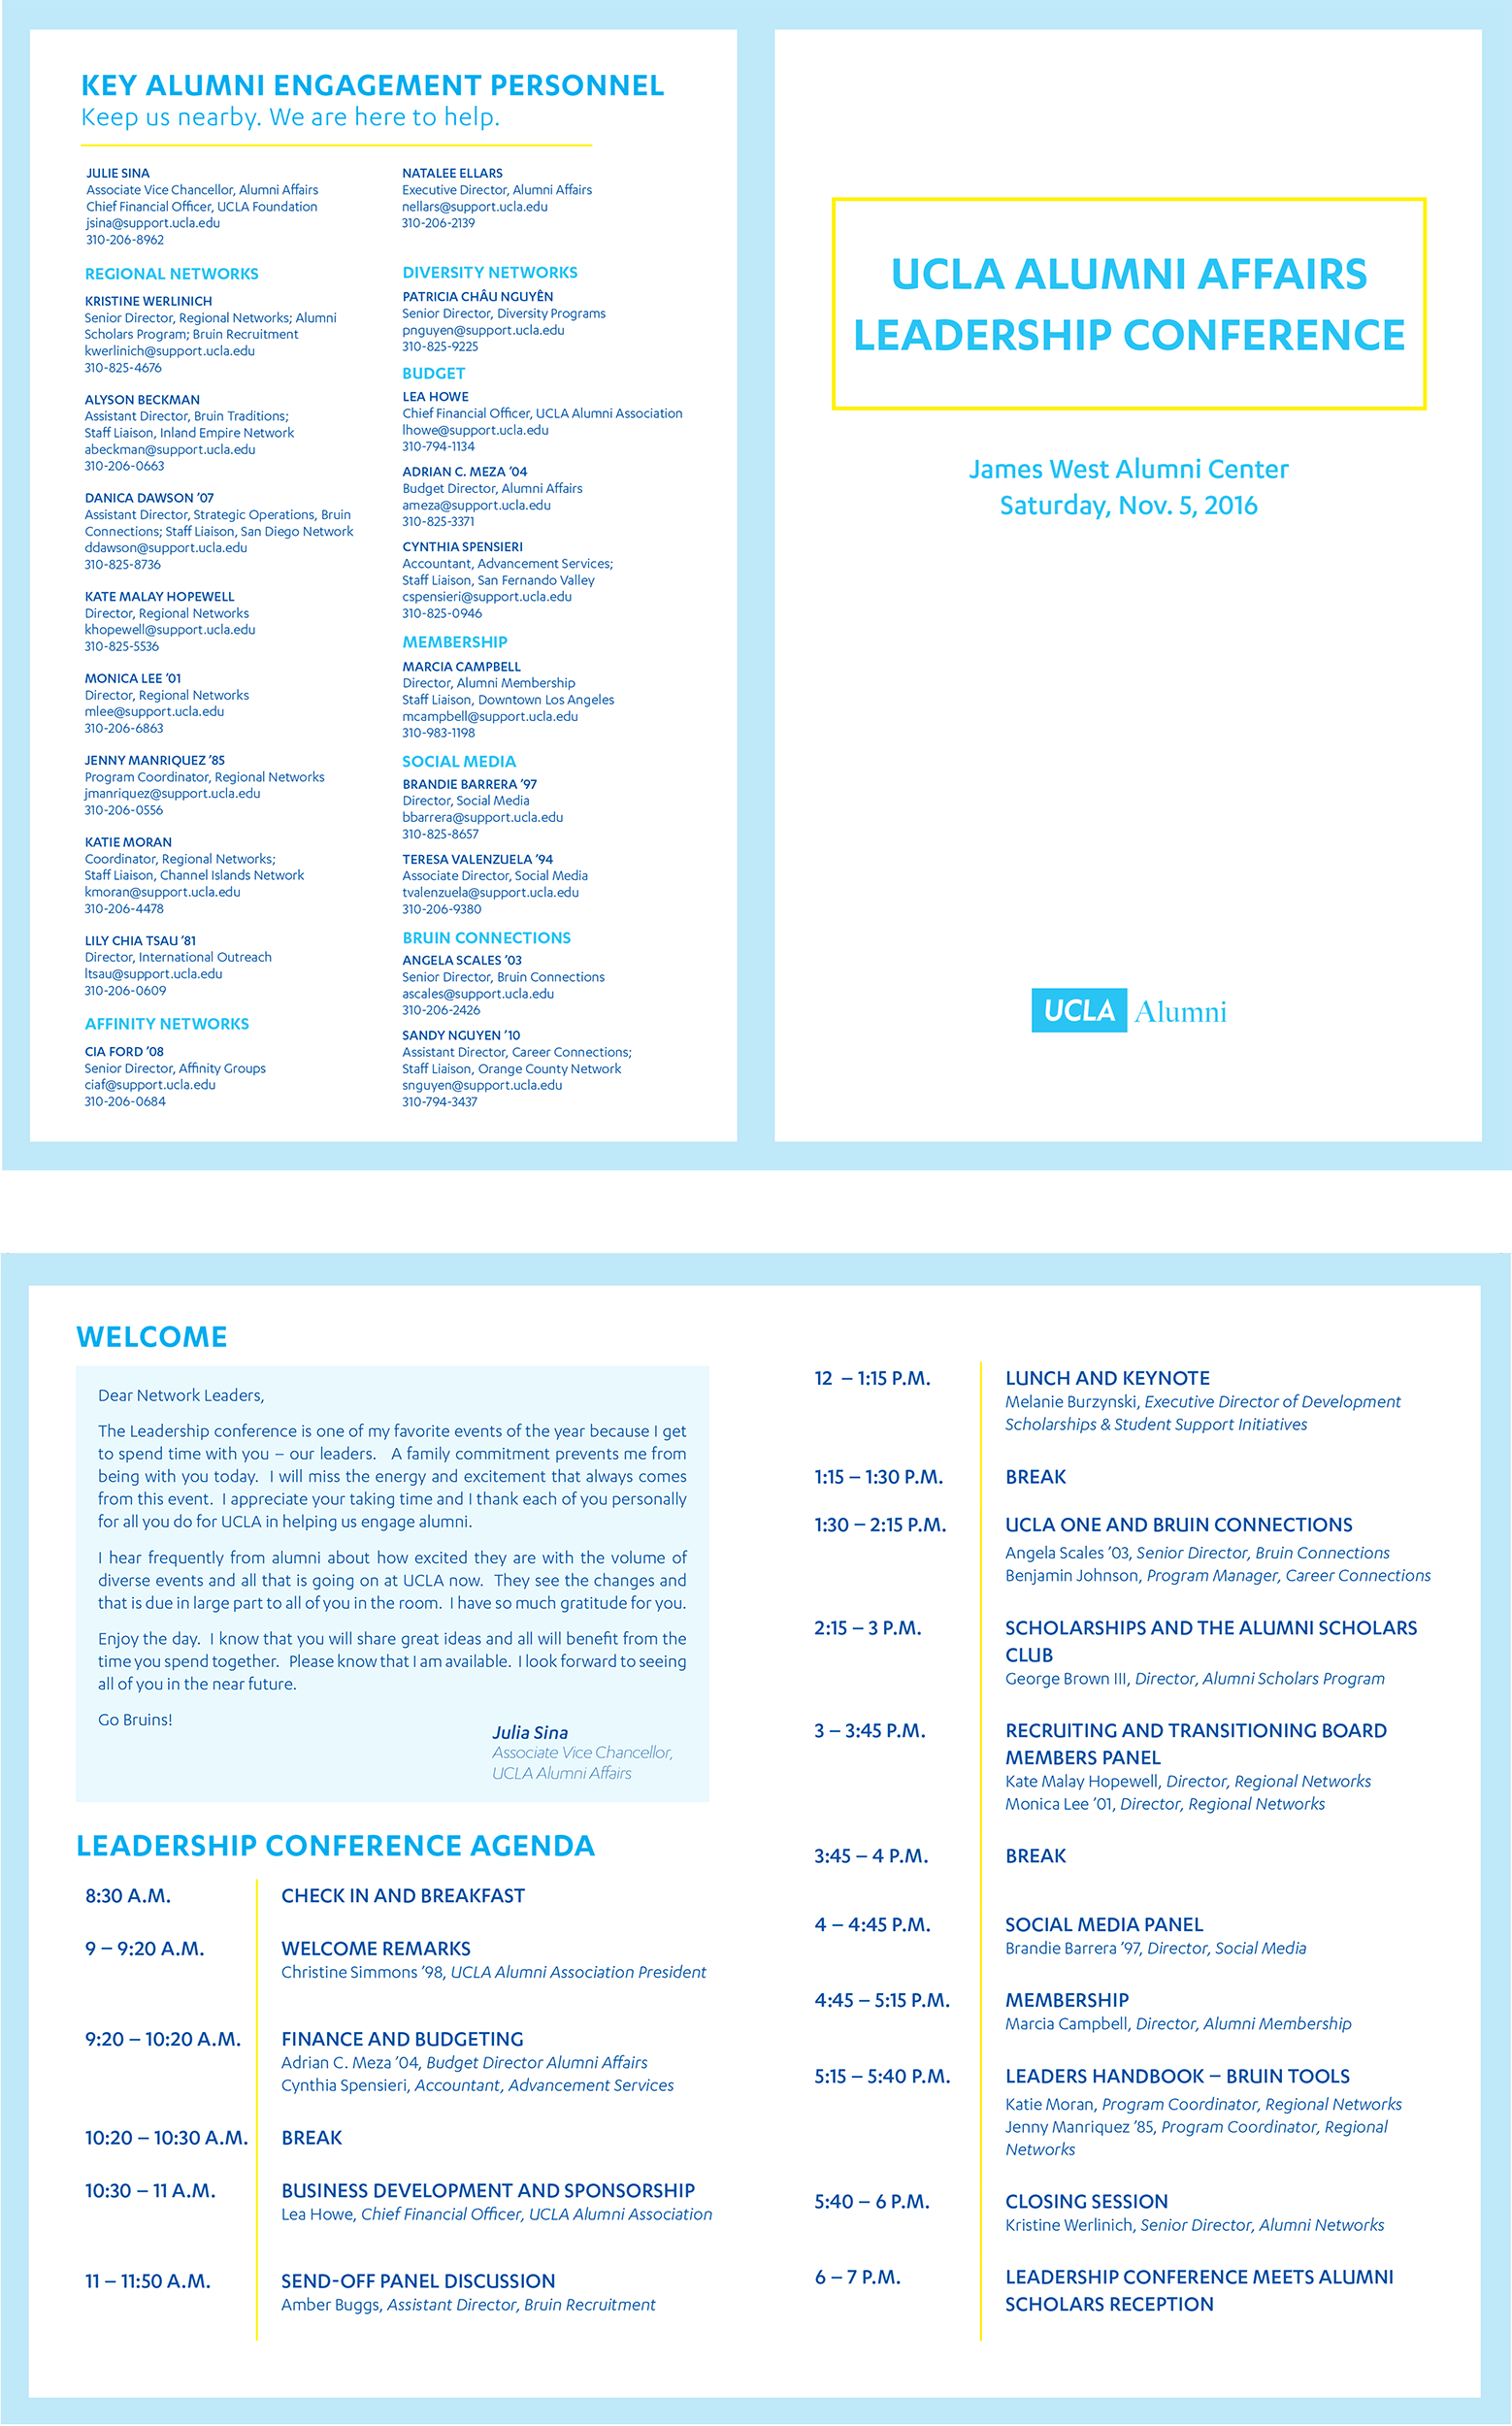 An adaptable agenda template, designed to work for multiple events rather than a single use.